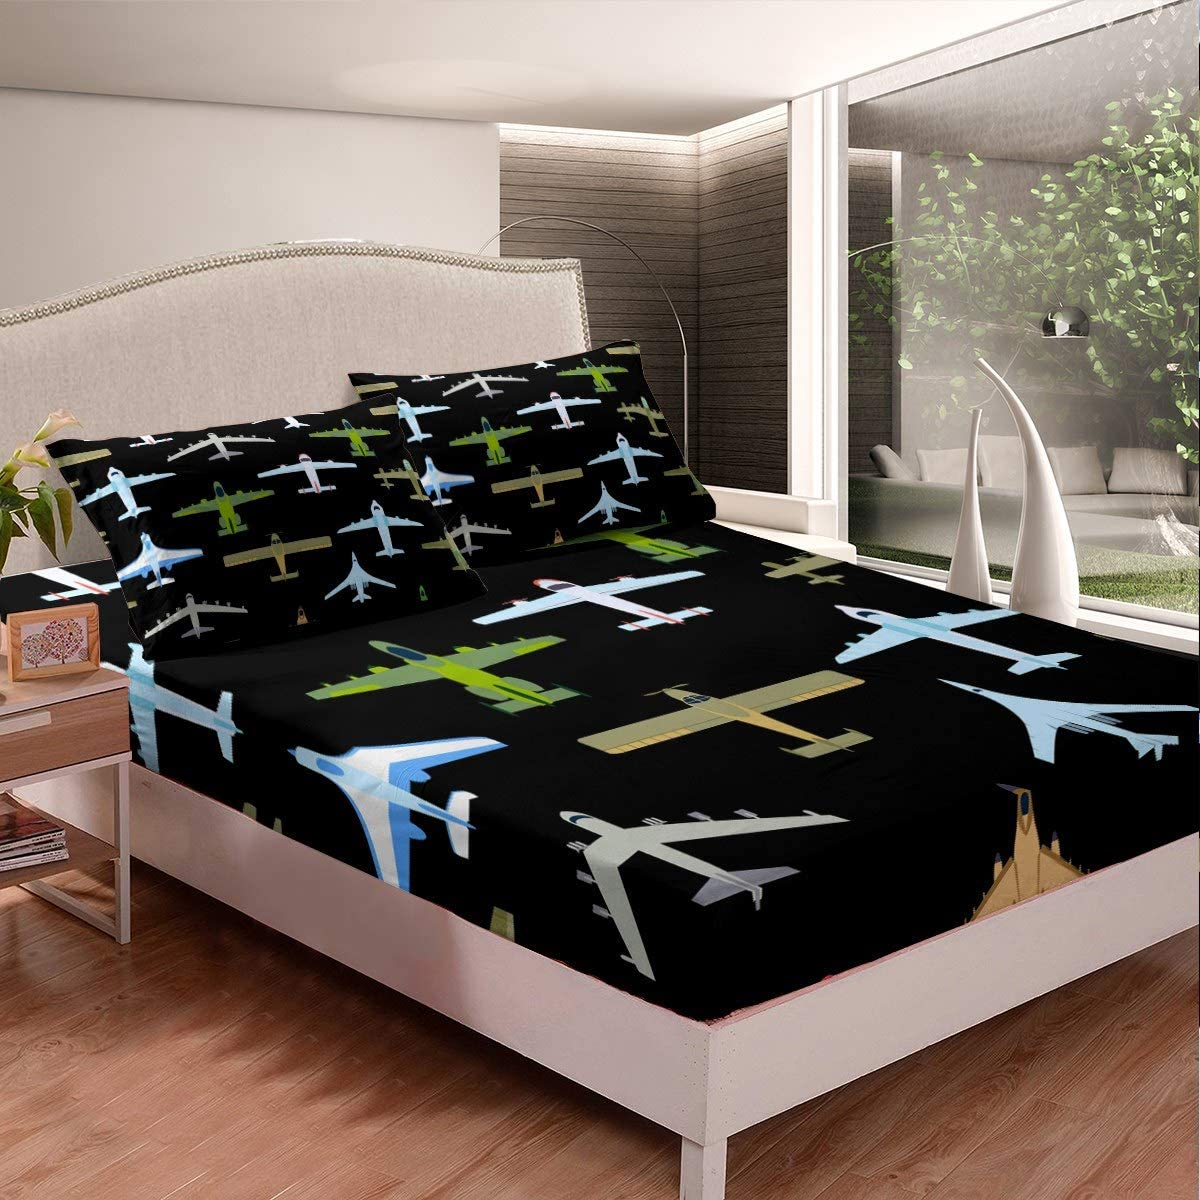 Feelyou Guitar Print Bed Sheet Set Boys Teens Rock Music Theme Fitted Sheet Youth Electric Guitar Bedding Set Musical Instrument Bed Cover,Room Decor 2Pcs Sheets Twin,White